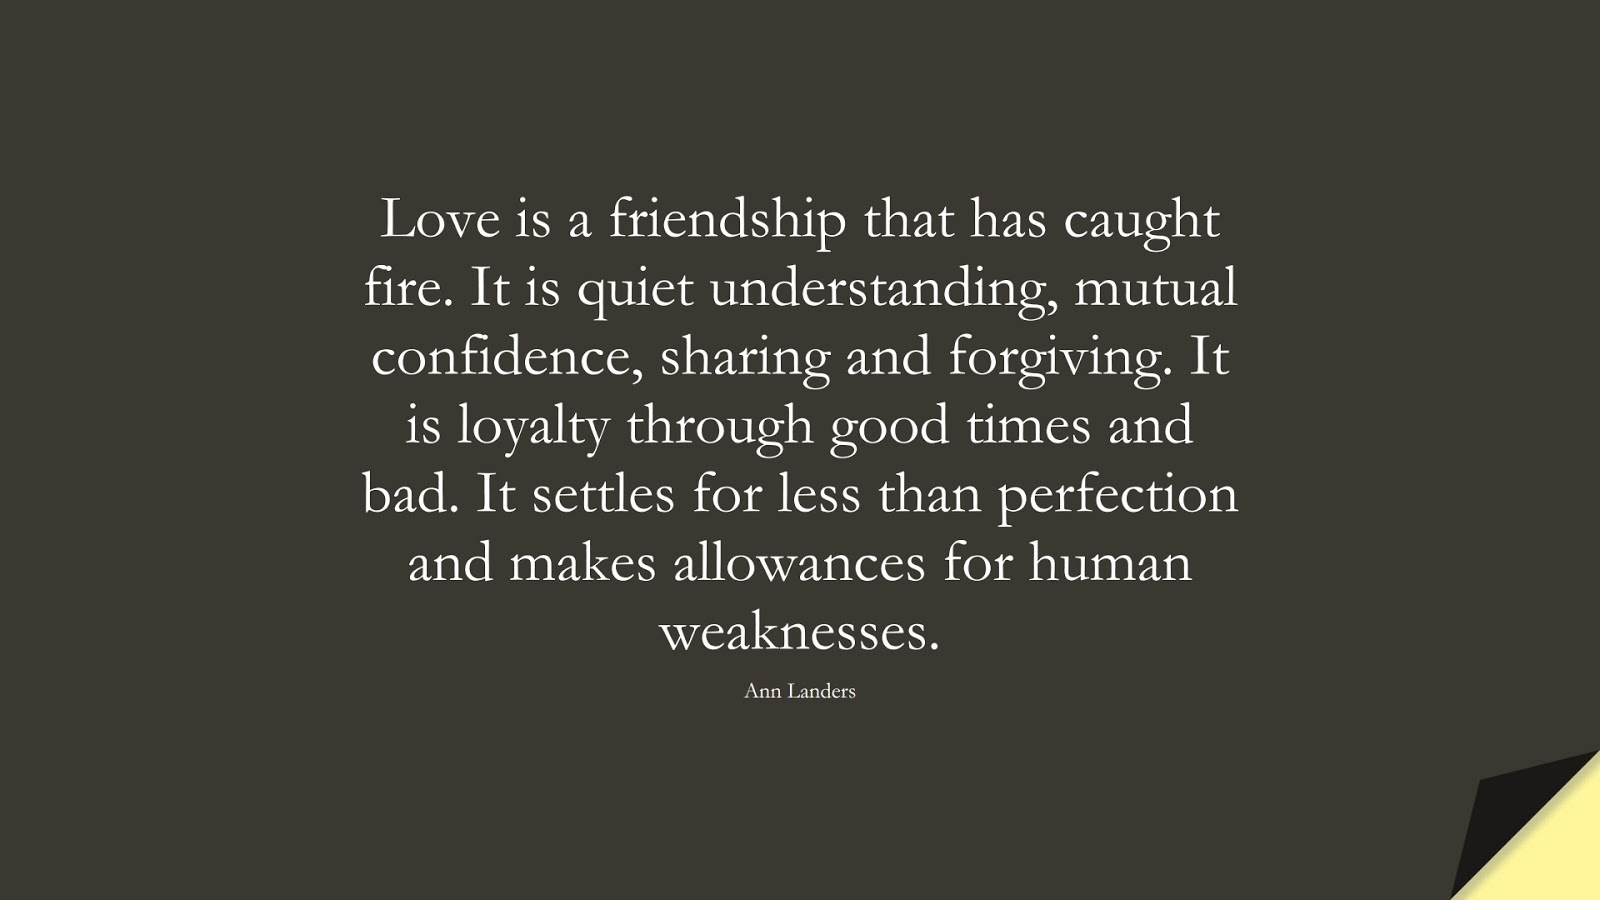 Love is a friendship that has caught fire. It is quiet understanding, mutual confidence, sharing and forgiving. It is loyalty through good times and bad. It settles for less than perfection and makes allowances for human weaknesses. (Ann Landers);  #LoveQuotes